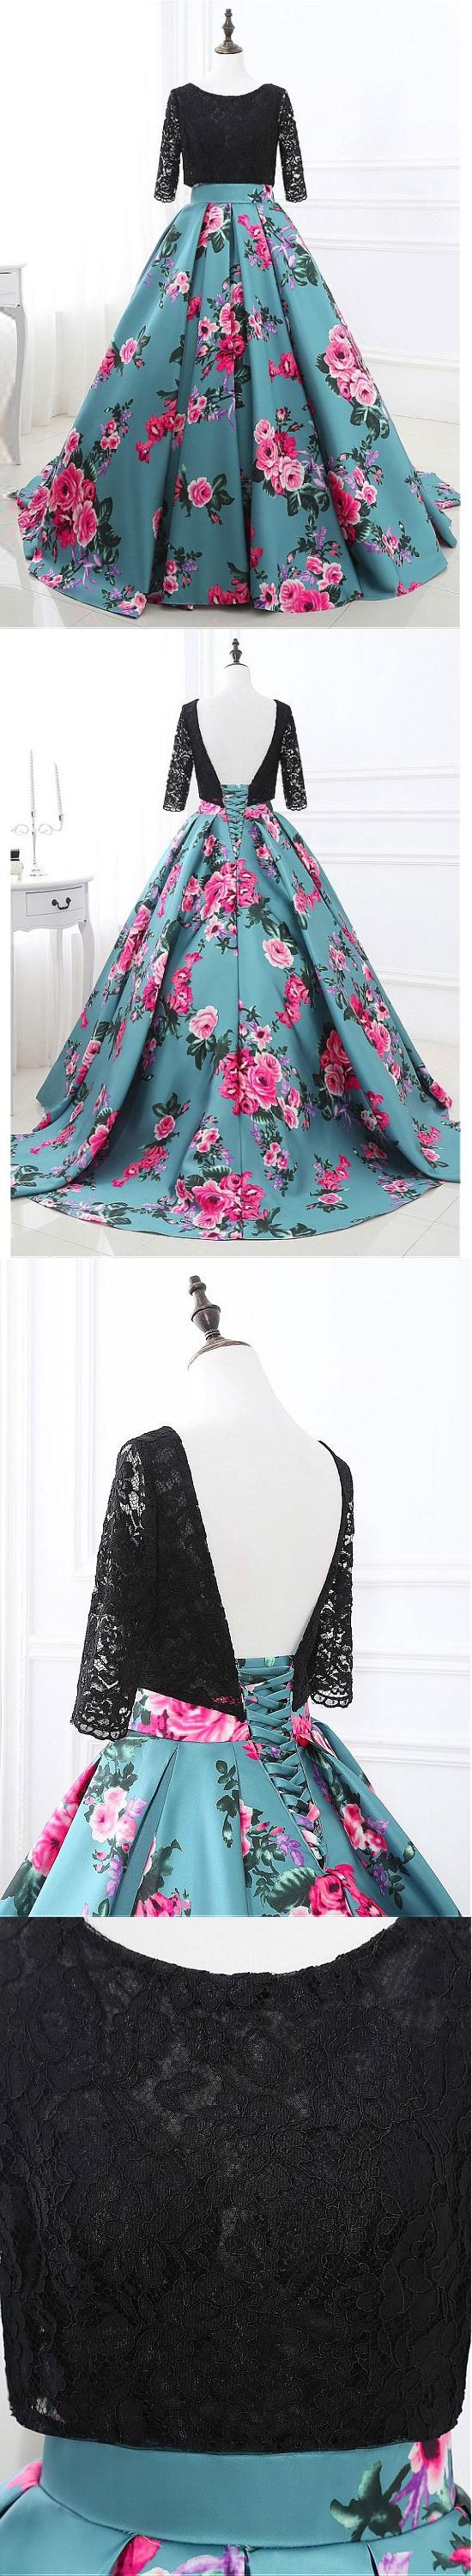 Print Prom Dresses,Floral Prom Dresses,Prom Dresses with Sleeves,Ball Gown Prom Dresses,Long Prom Gowns,Floral Pageant Dresses #prom #prom2K18 #prom2018 #pageant